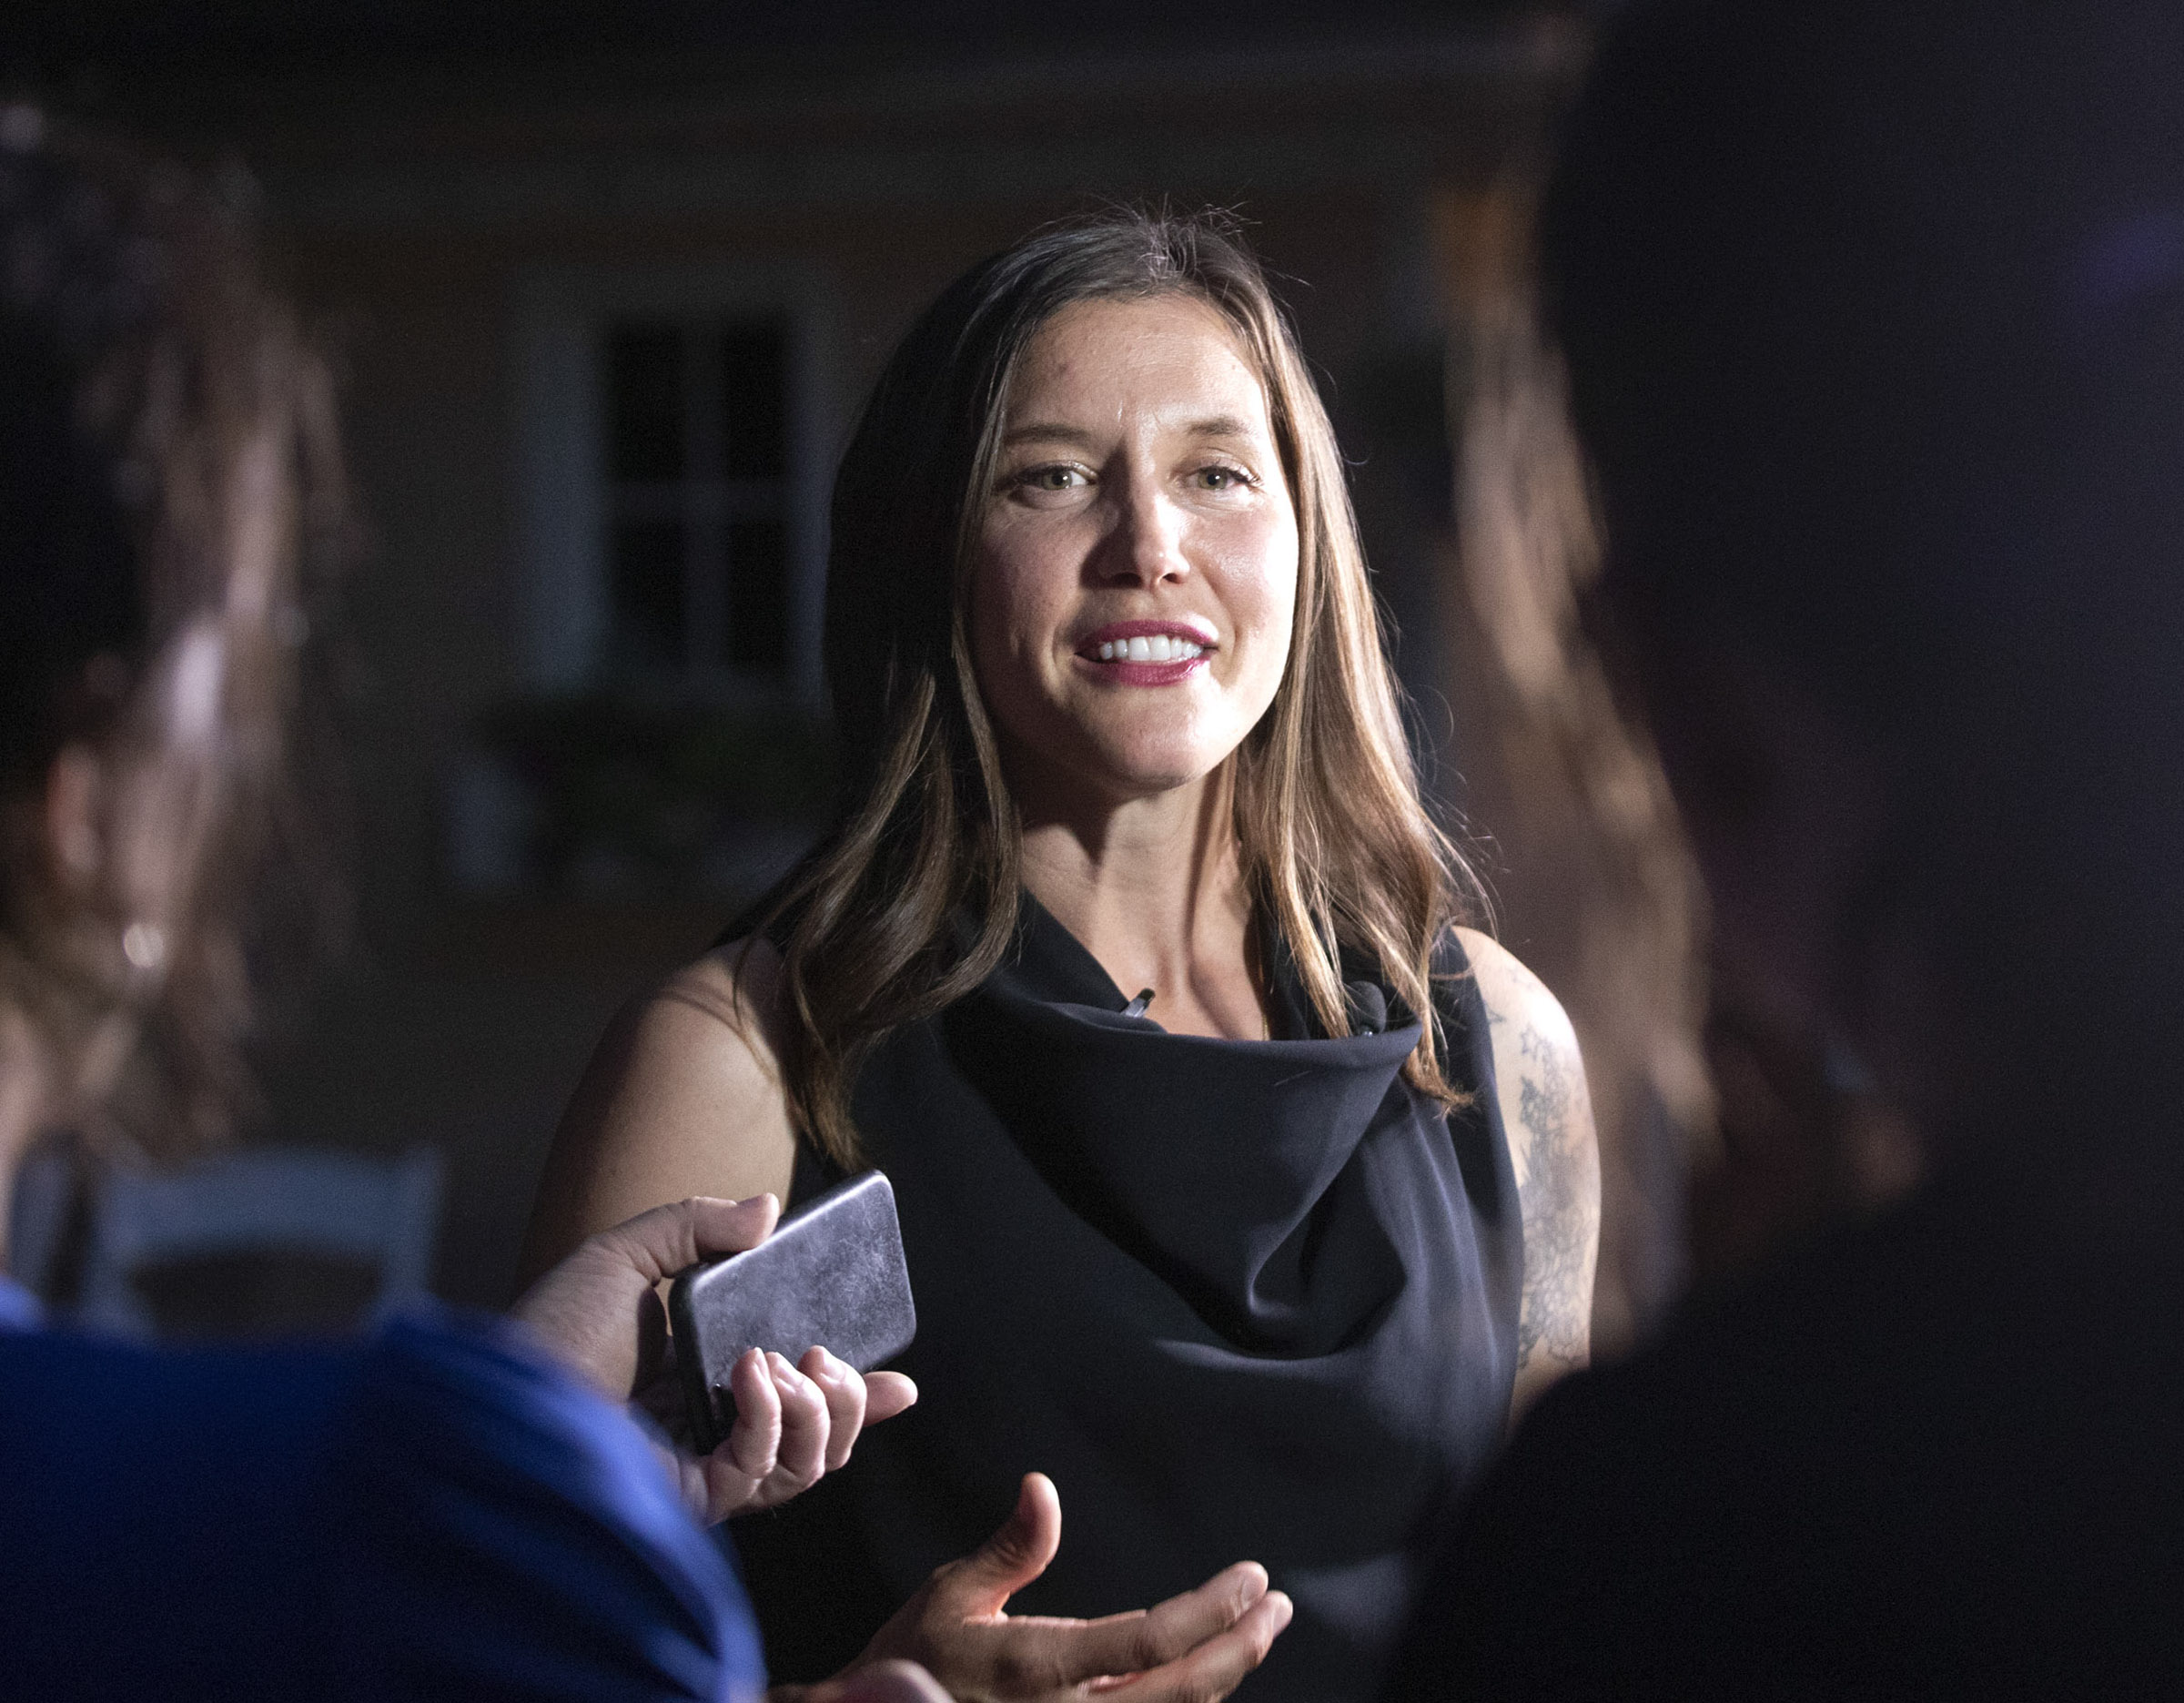 Salt Lake City Councilwoman Erin Mendenhall talks with members of the media during her mayoral primary election night event in Salt Lake City on Tuesday, Aug. 13, 2019.